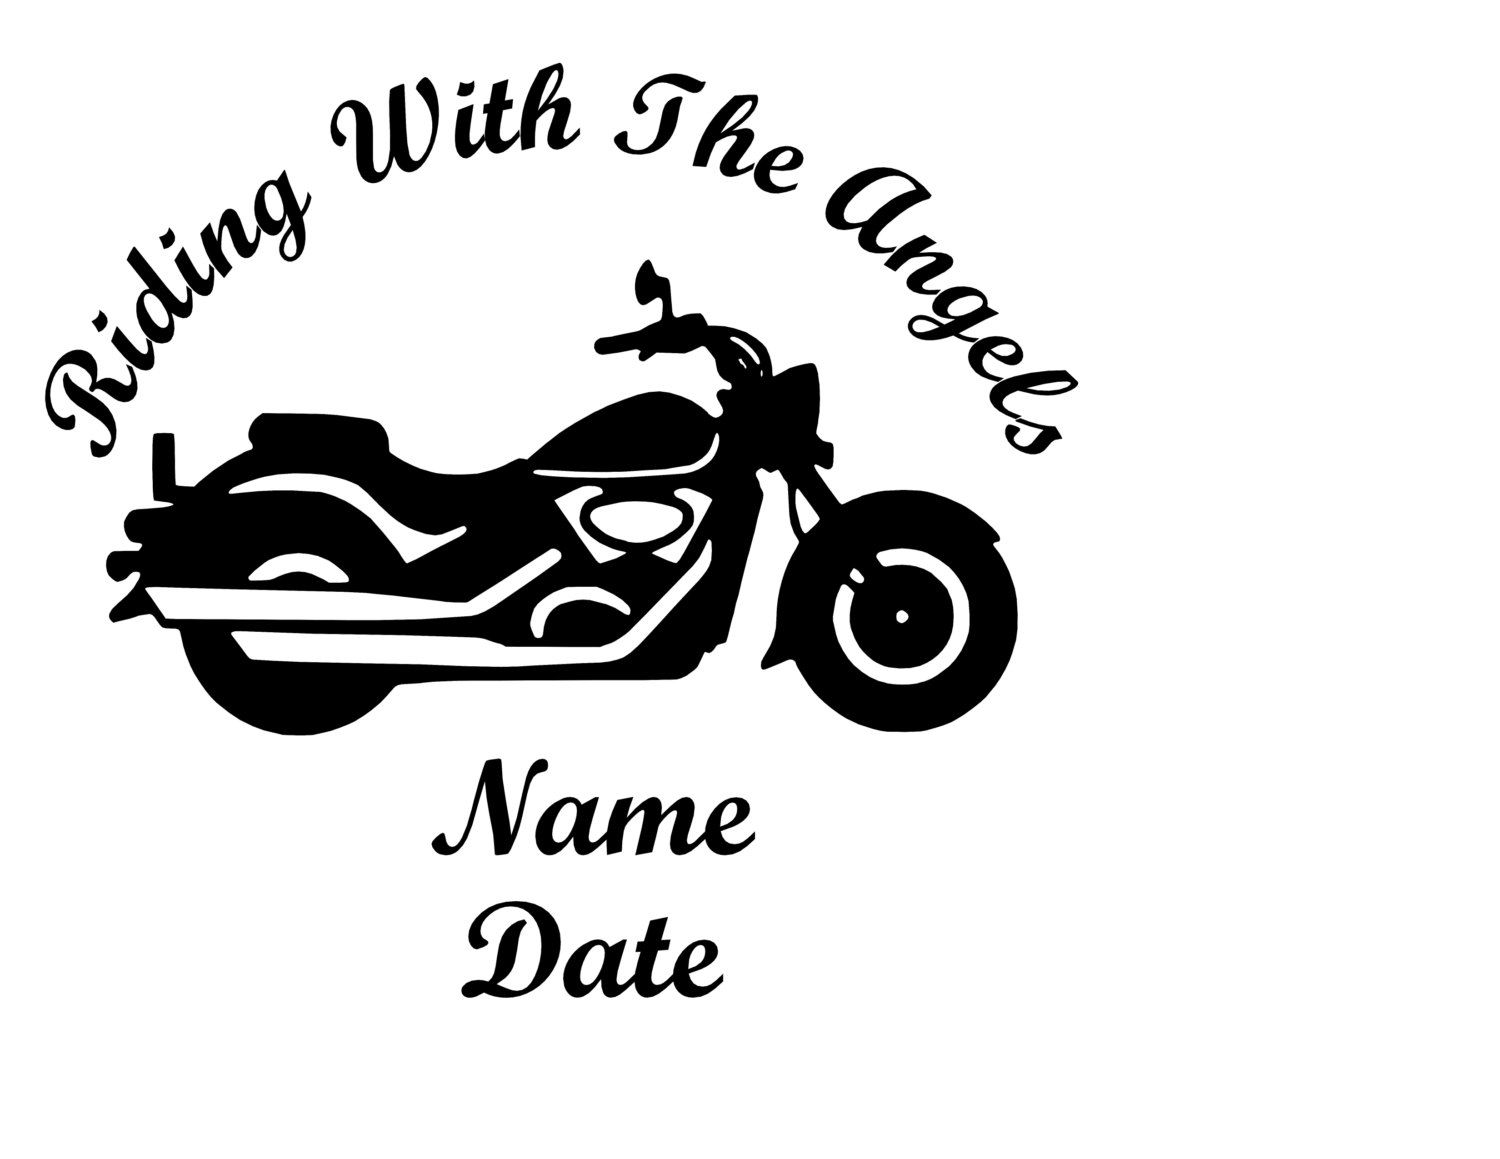 Riding With The Angels Motorcycle Sticker Vinyl Decal